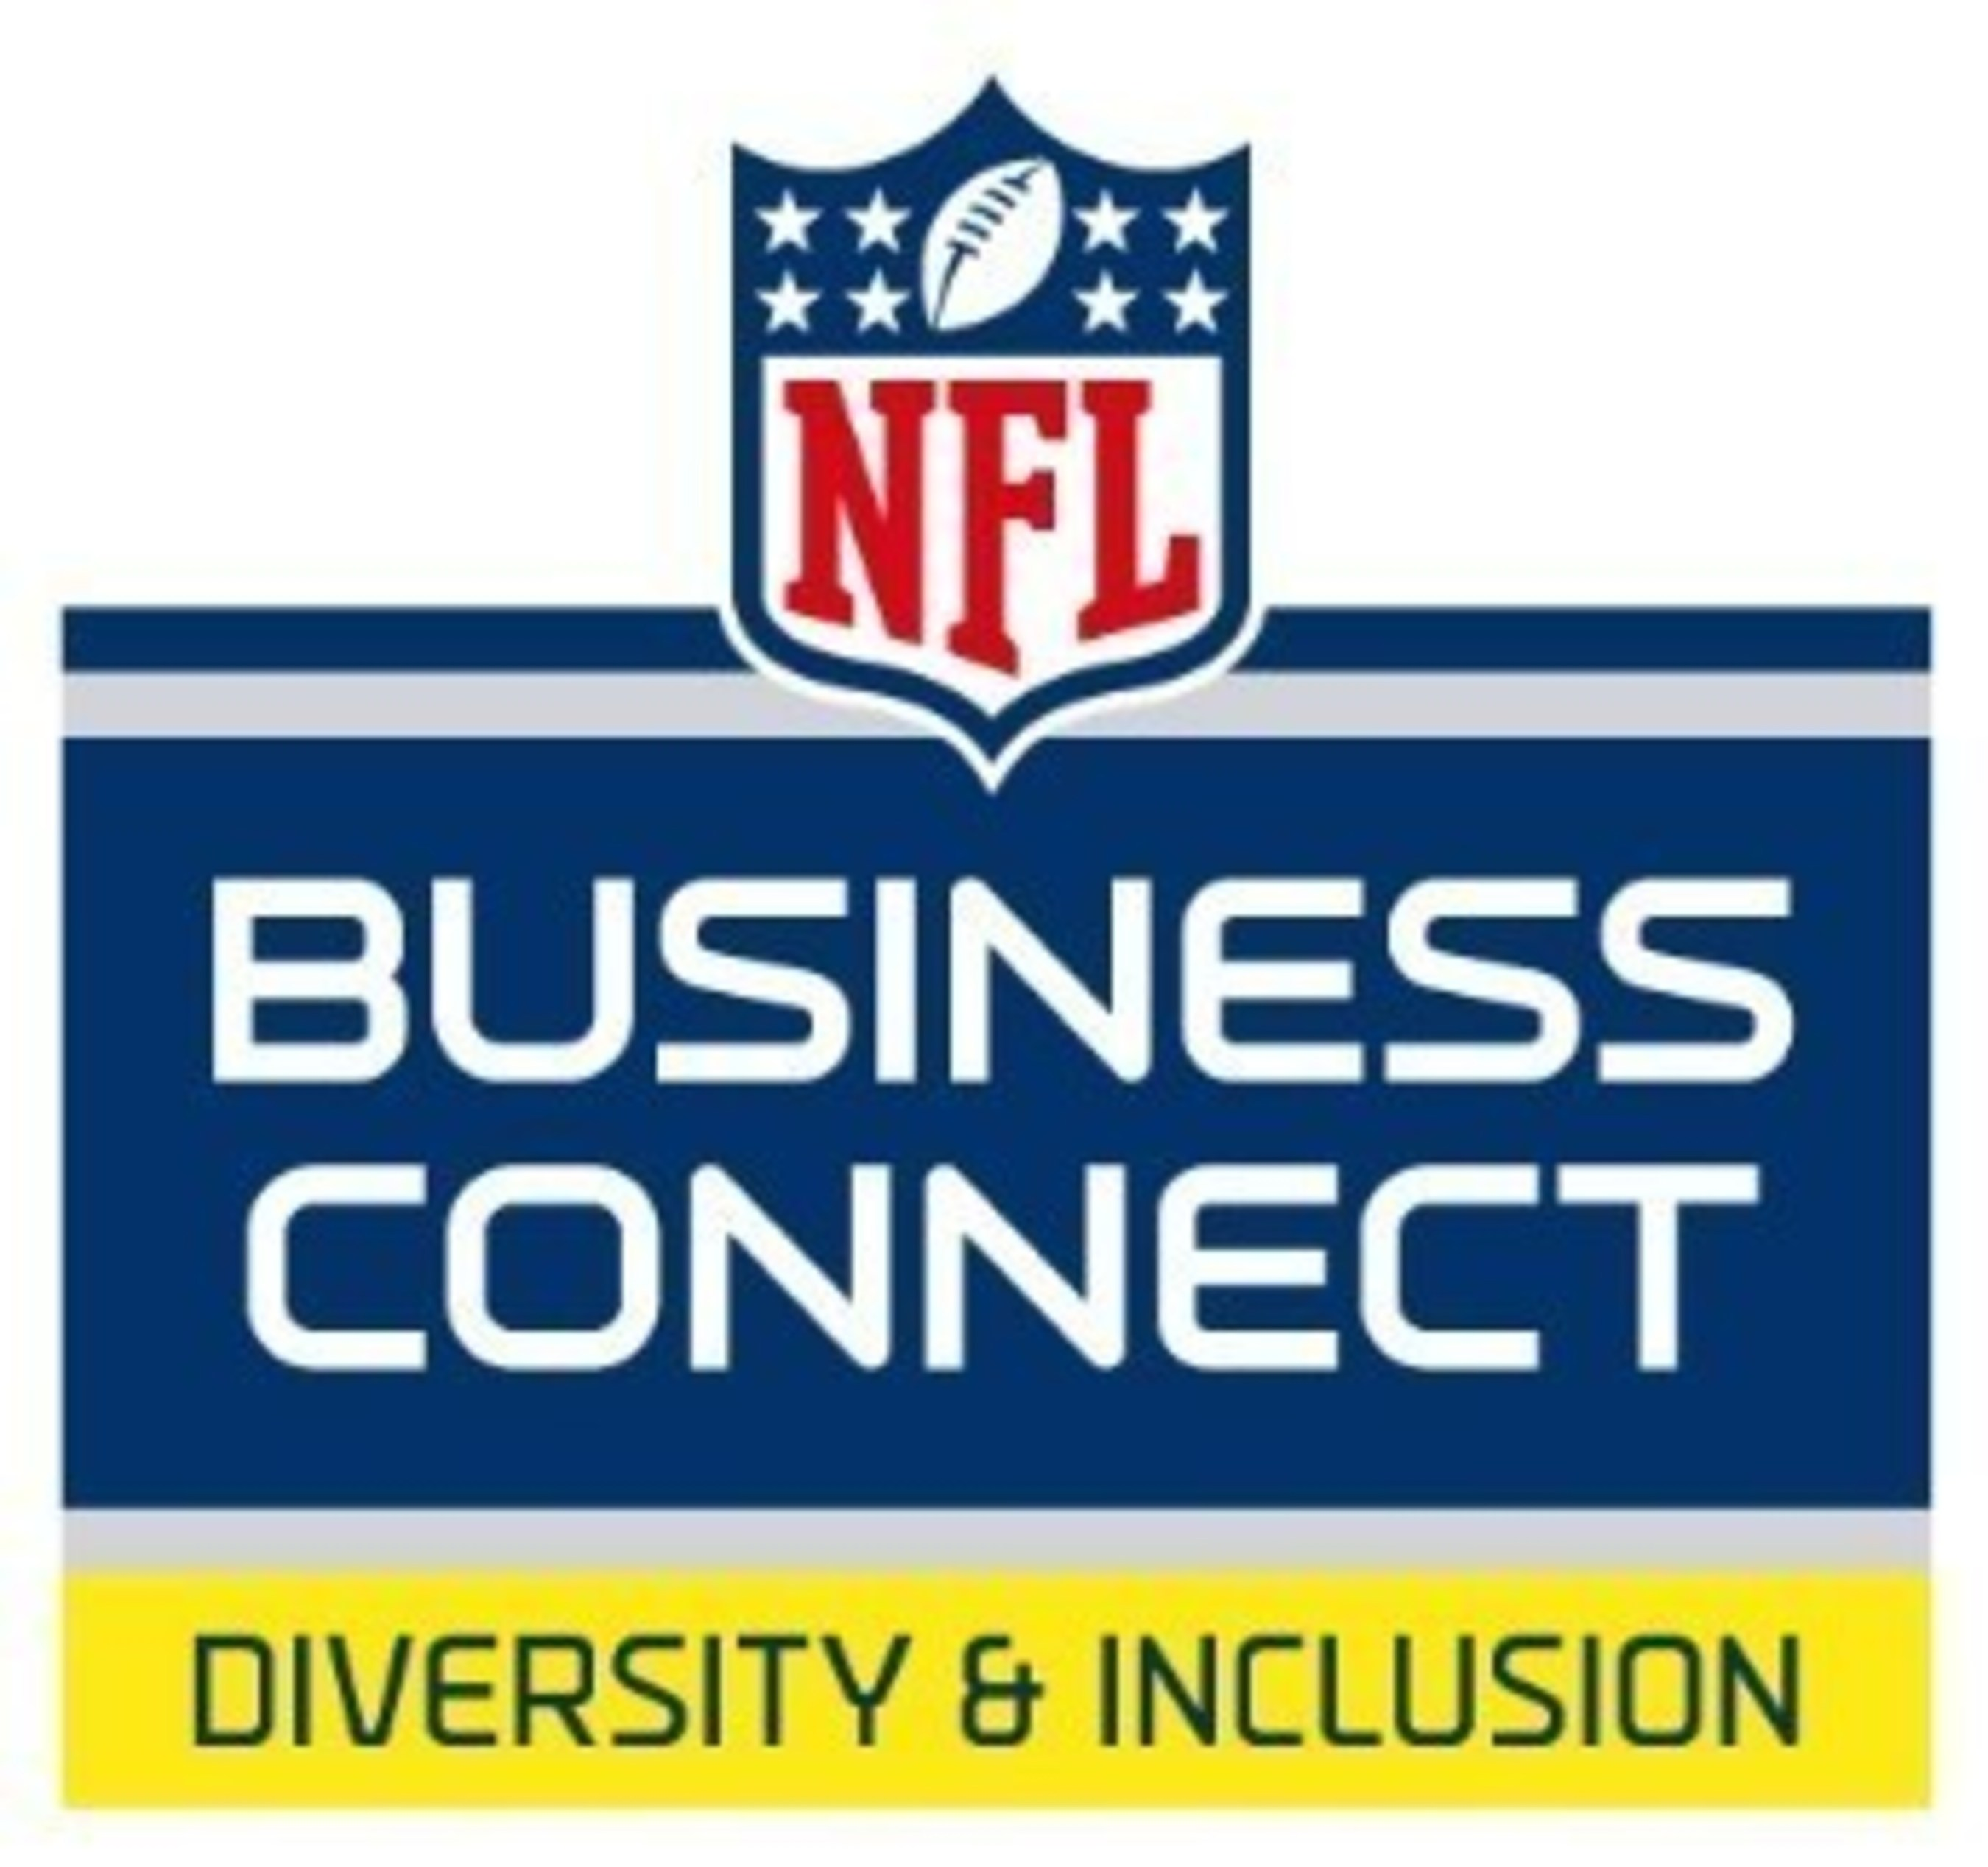 Minnesota_Super_Bowl_Host_Committee_NFL_Business_Connect_Logo